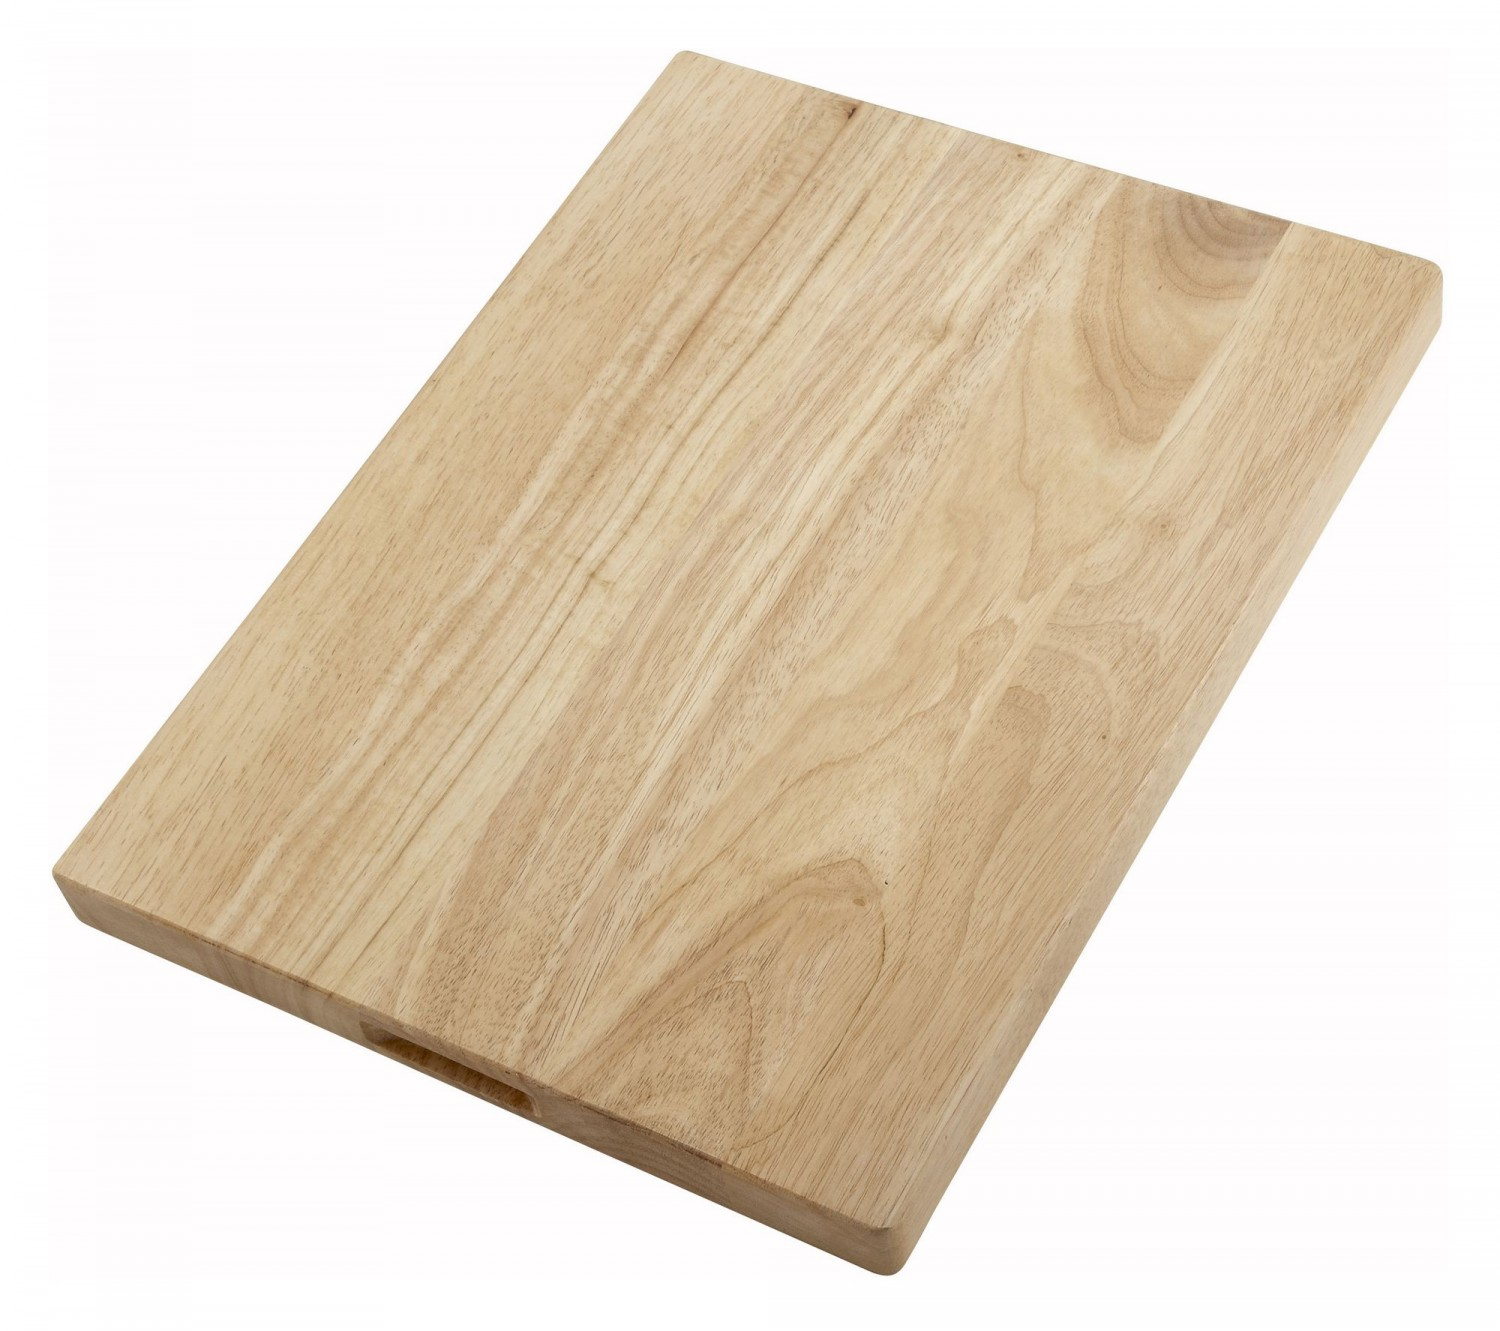 "Winco WCB-1218 Wooden Cutting Board 12"" x 18"" x 1-3/4"""